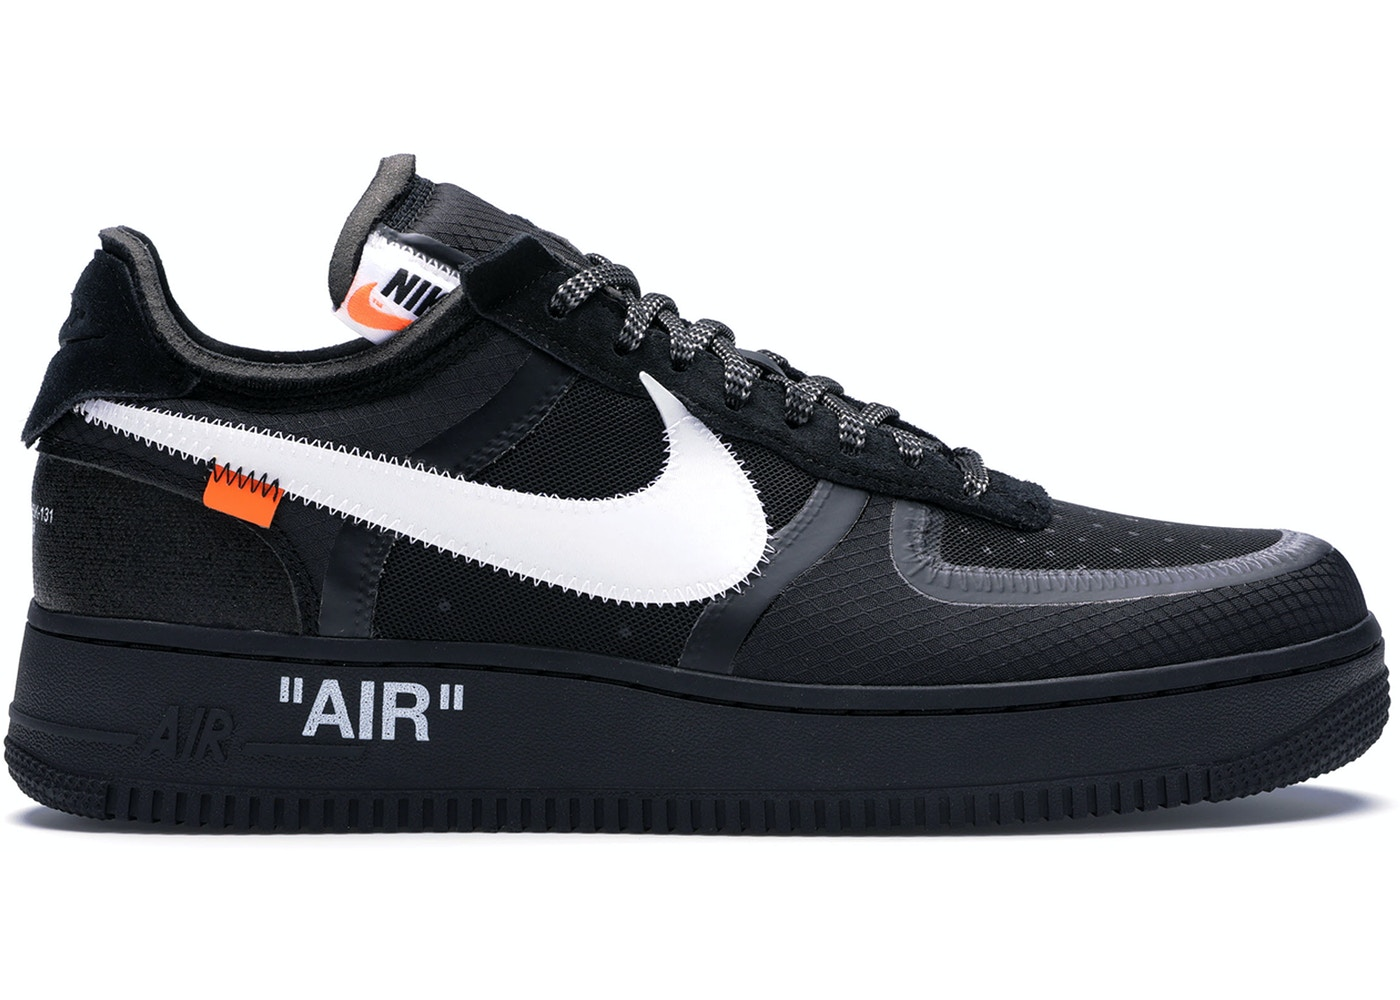 sports shoes 9176a 67348 Air Force 1 Low Off-White Black White - AO4606-001